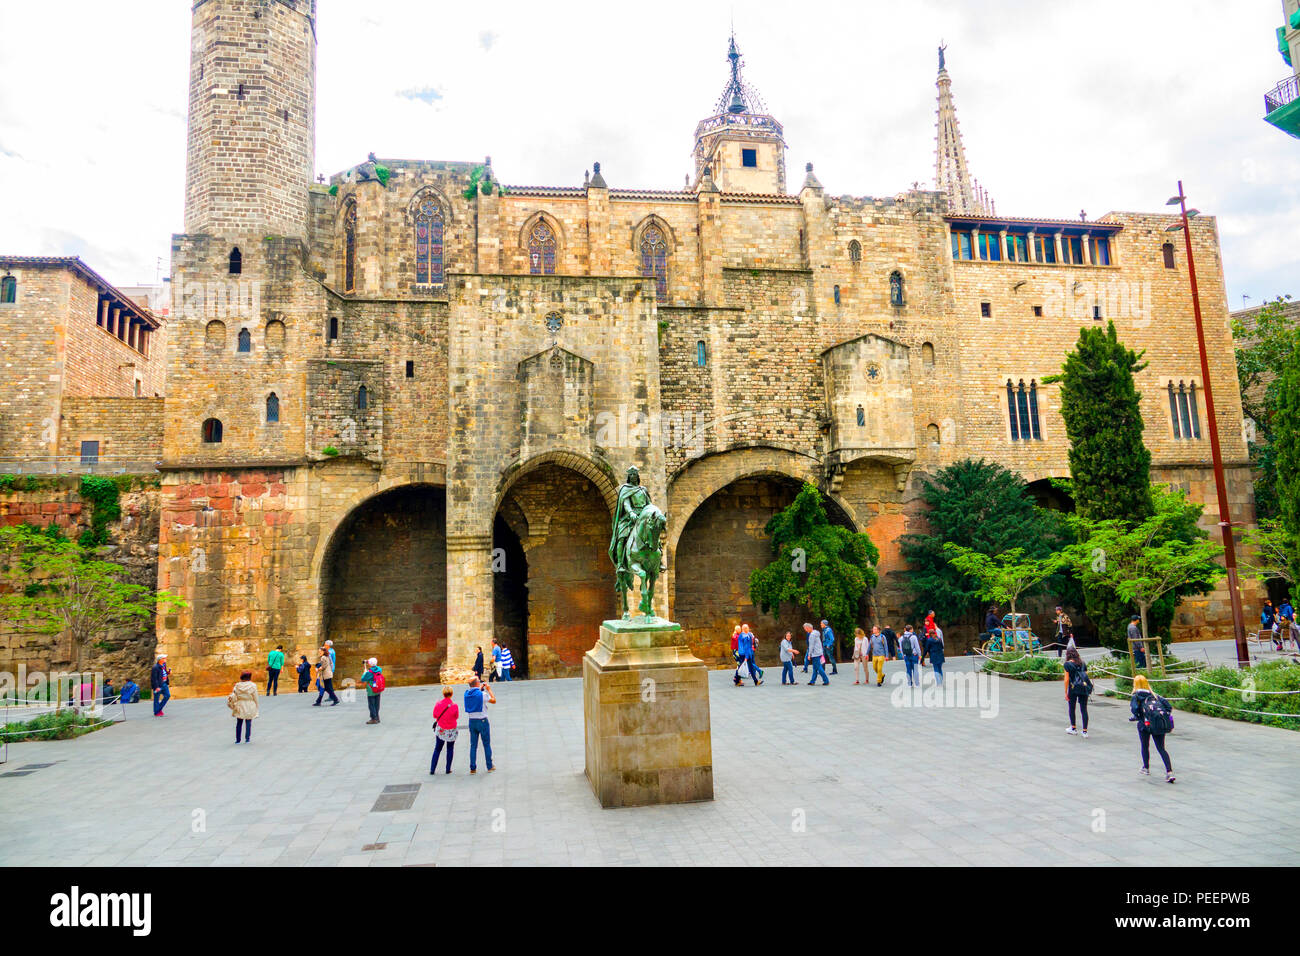 Count Of Barcelona Stock Photos & Count Of Barcelona Stock ...